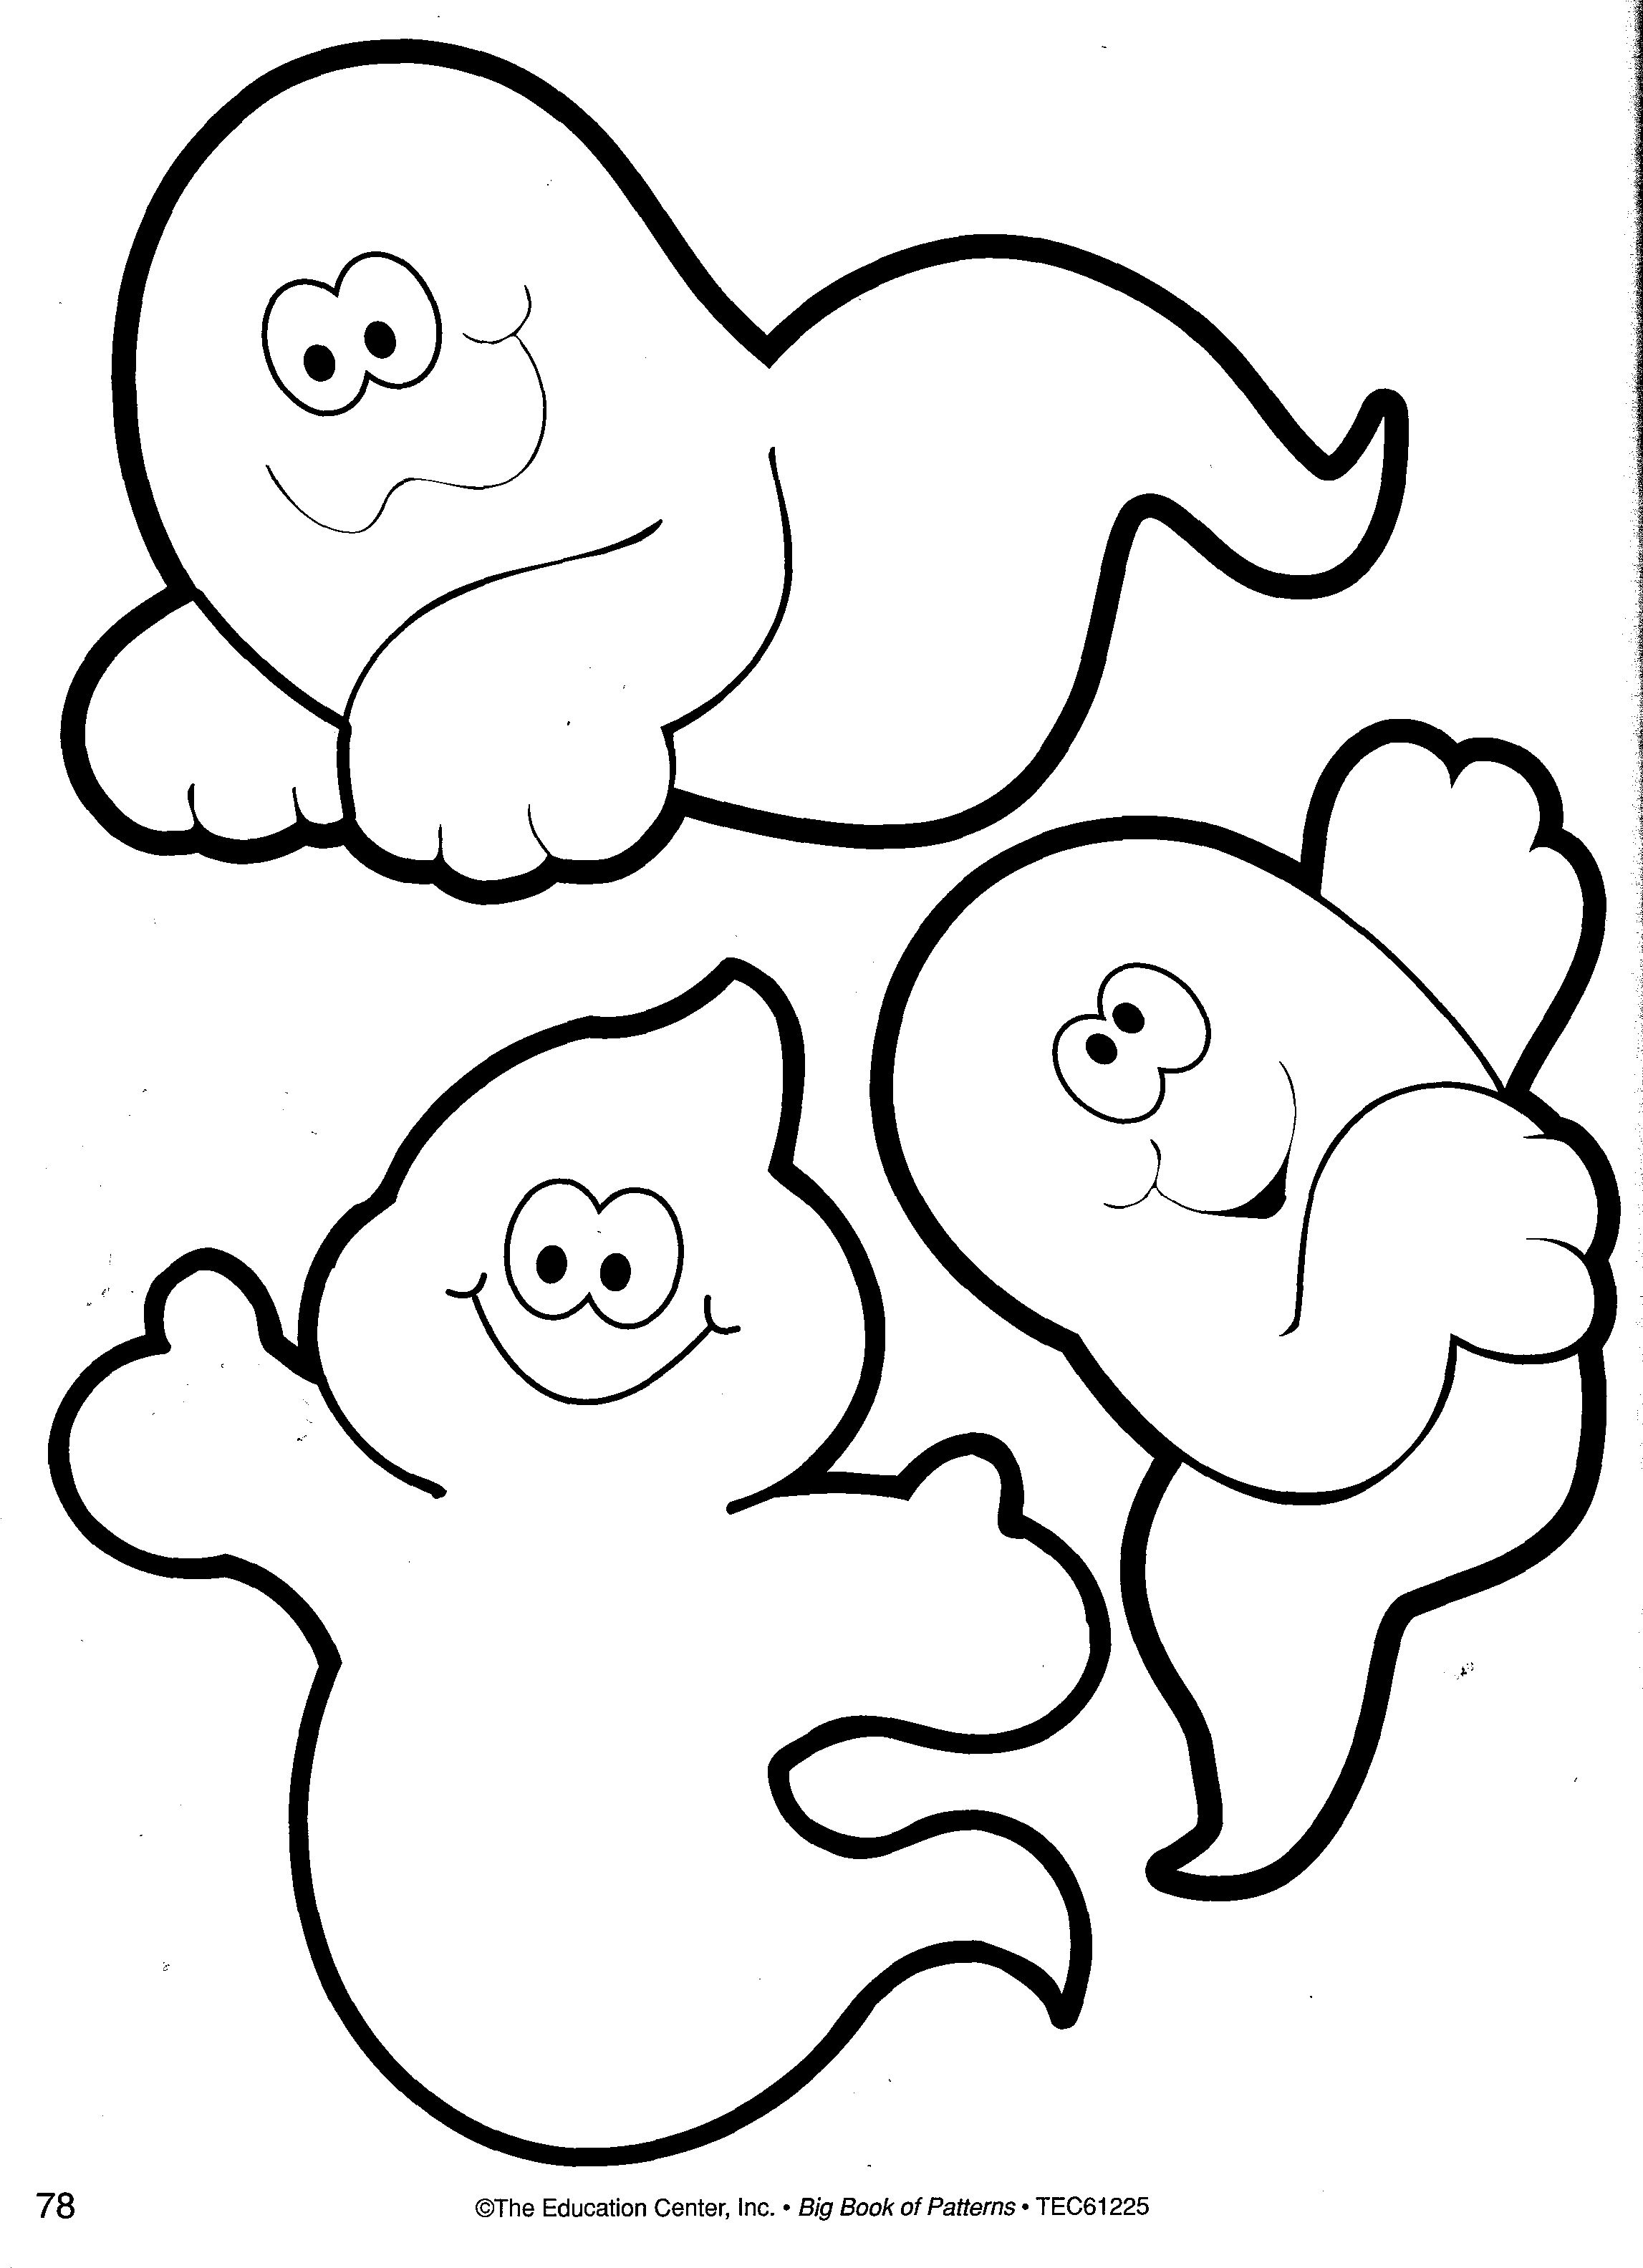 coloring ghost images printable ghost coloring pages for kids images coloring ghost